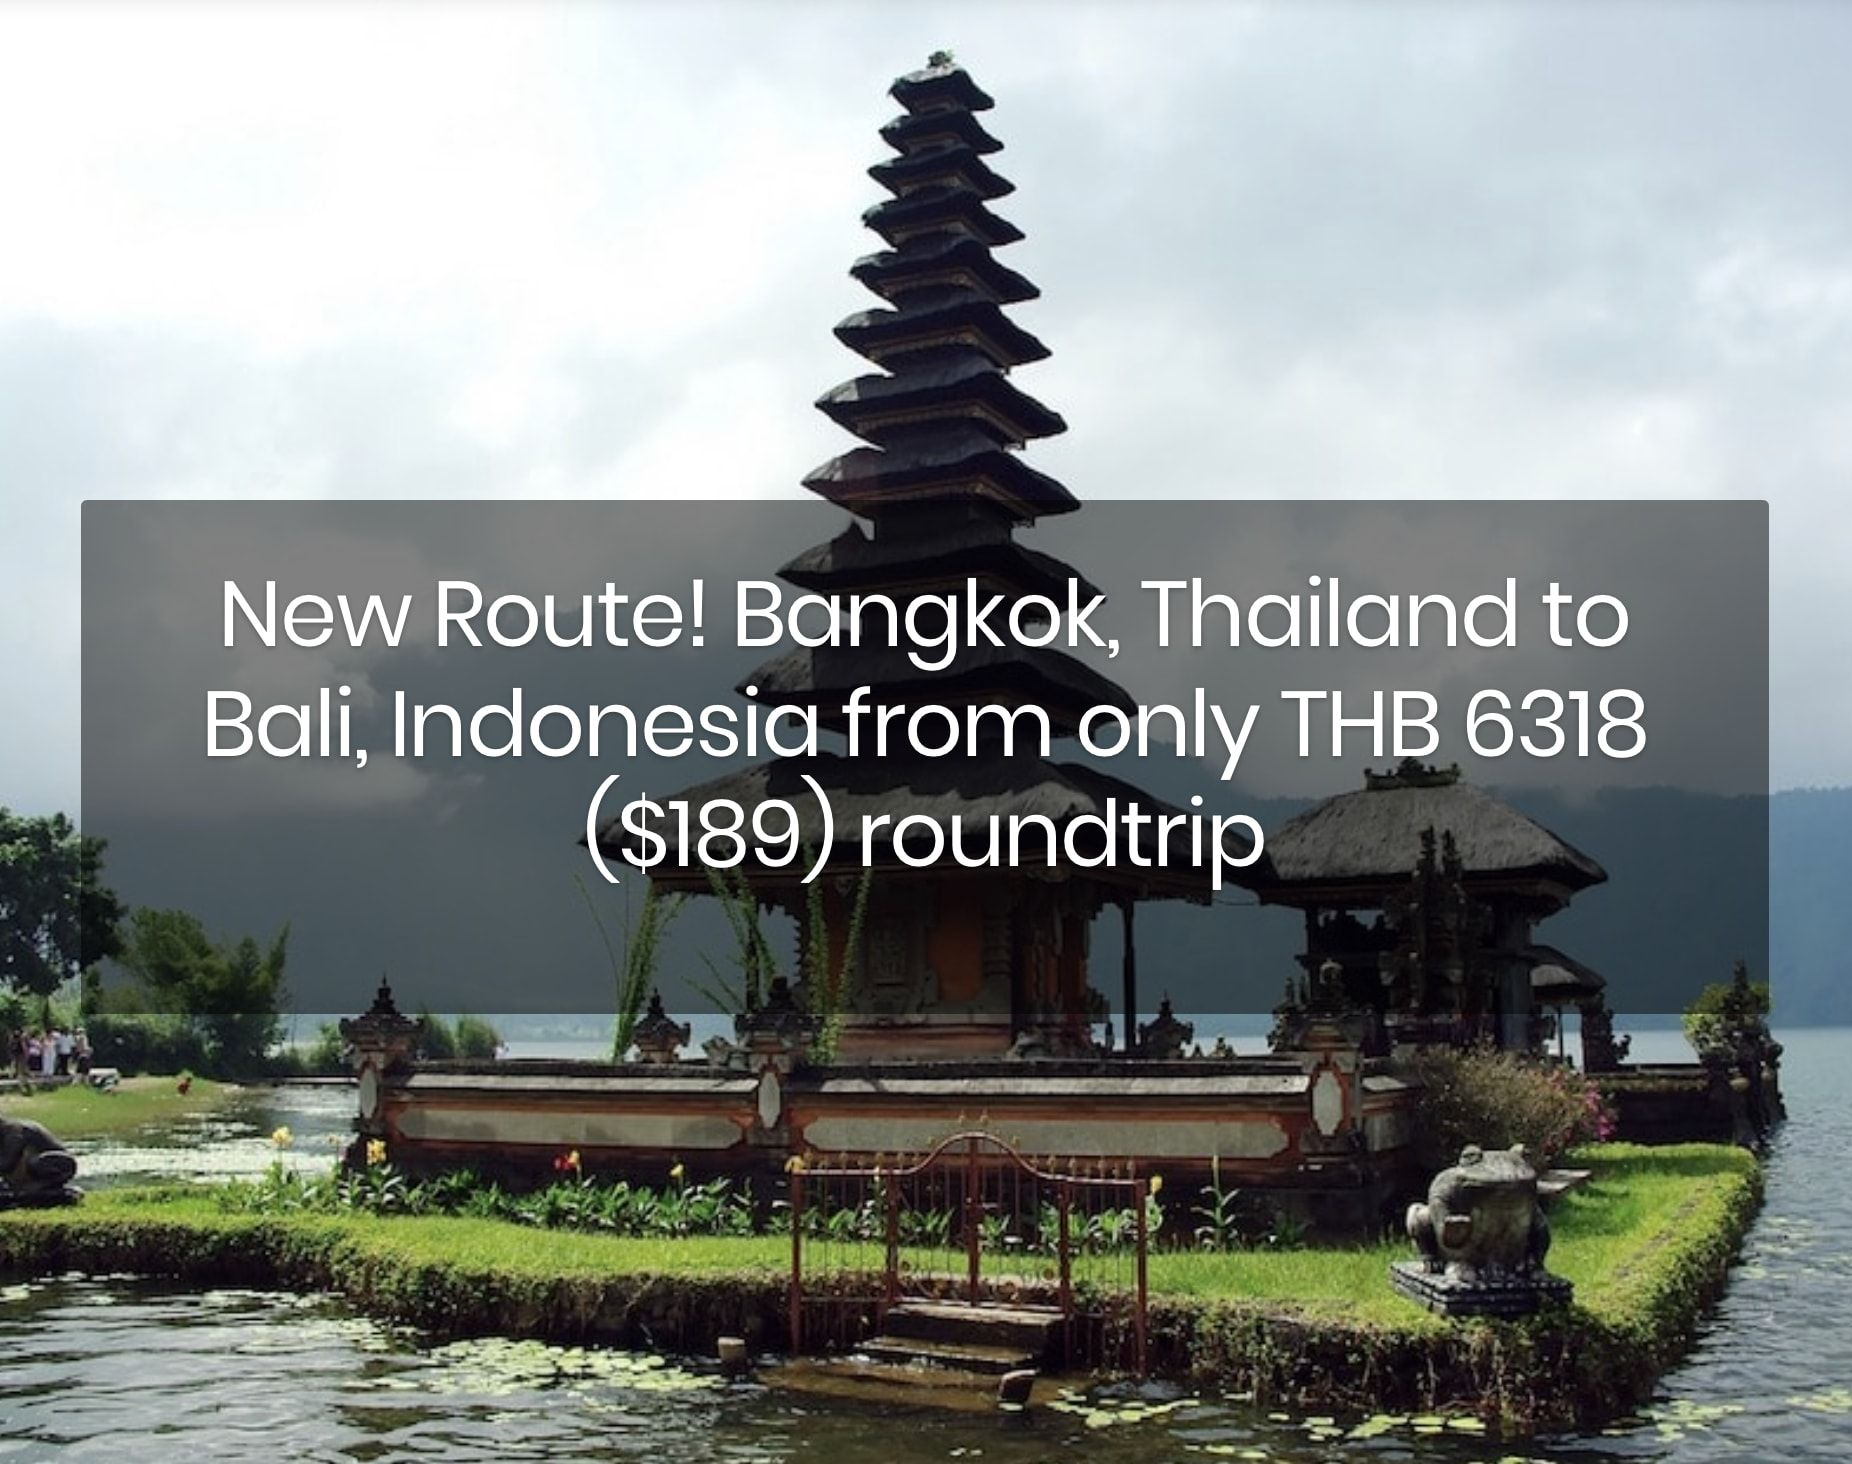 New Route! Bangkok, Thailand to Bali, Indonesia from only